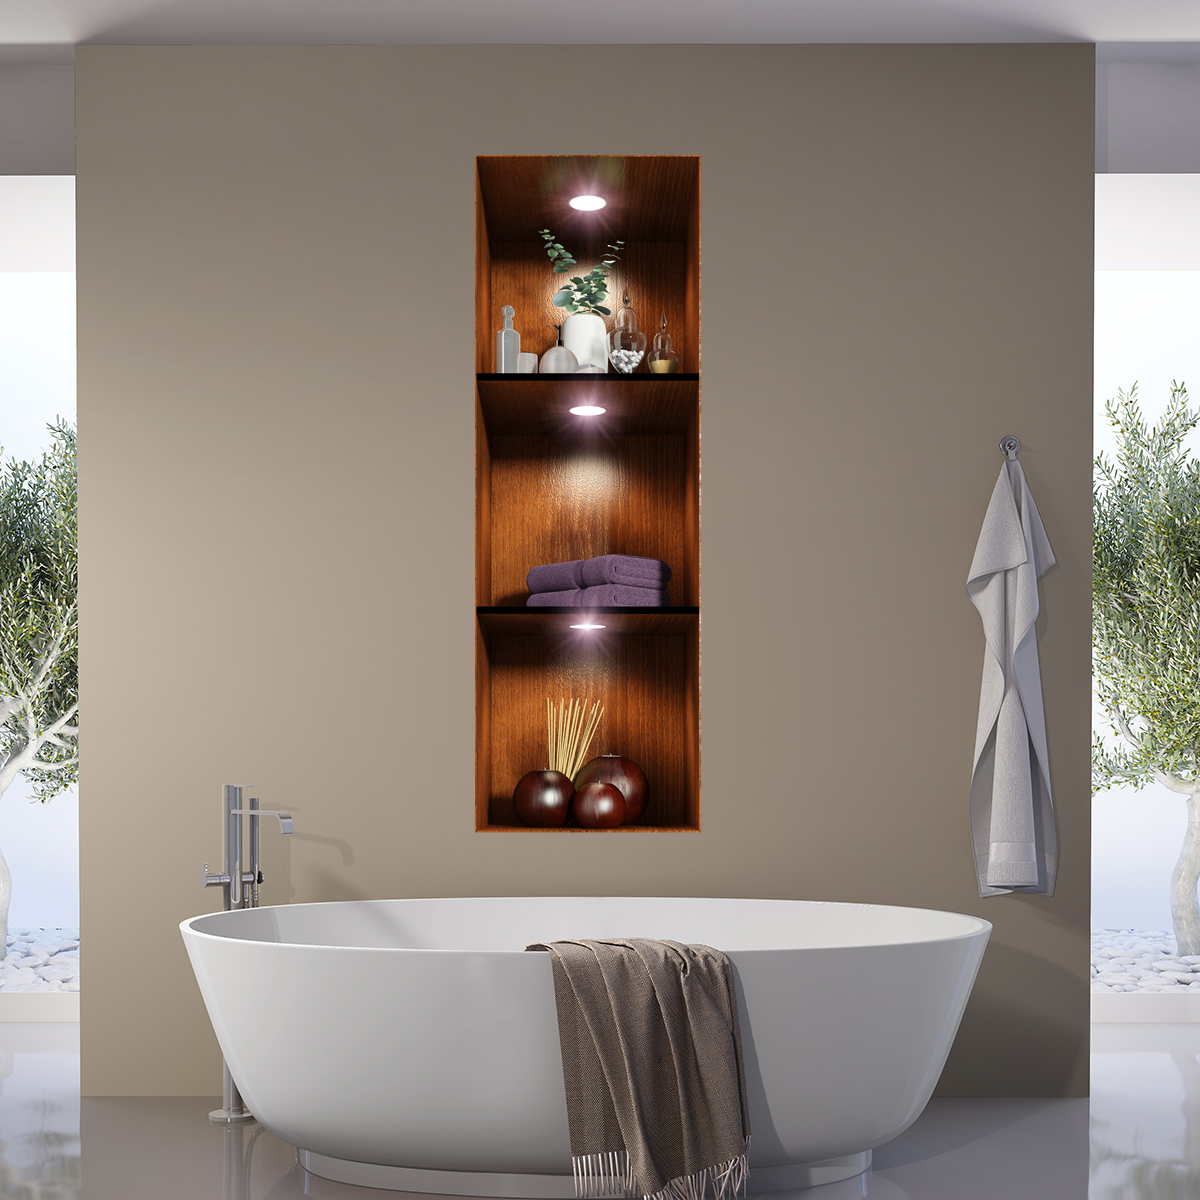 sticker effet 3d salle de bain ambiance spa stickers art et design artistiques ambiance sticker. Black Bedroom Furniture Sets. Home Design Ideas